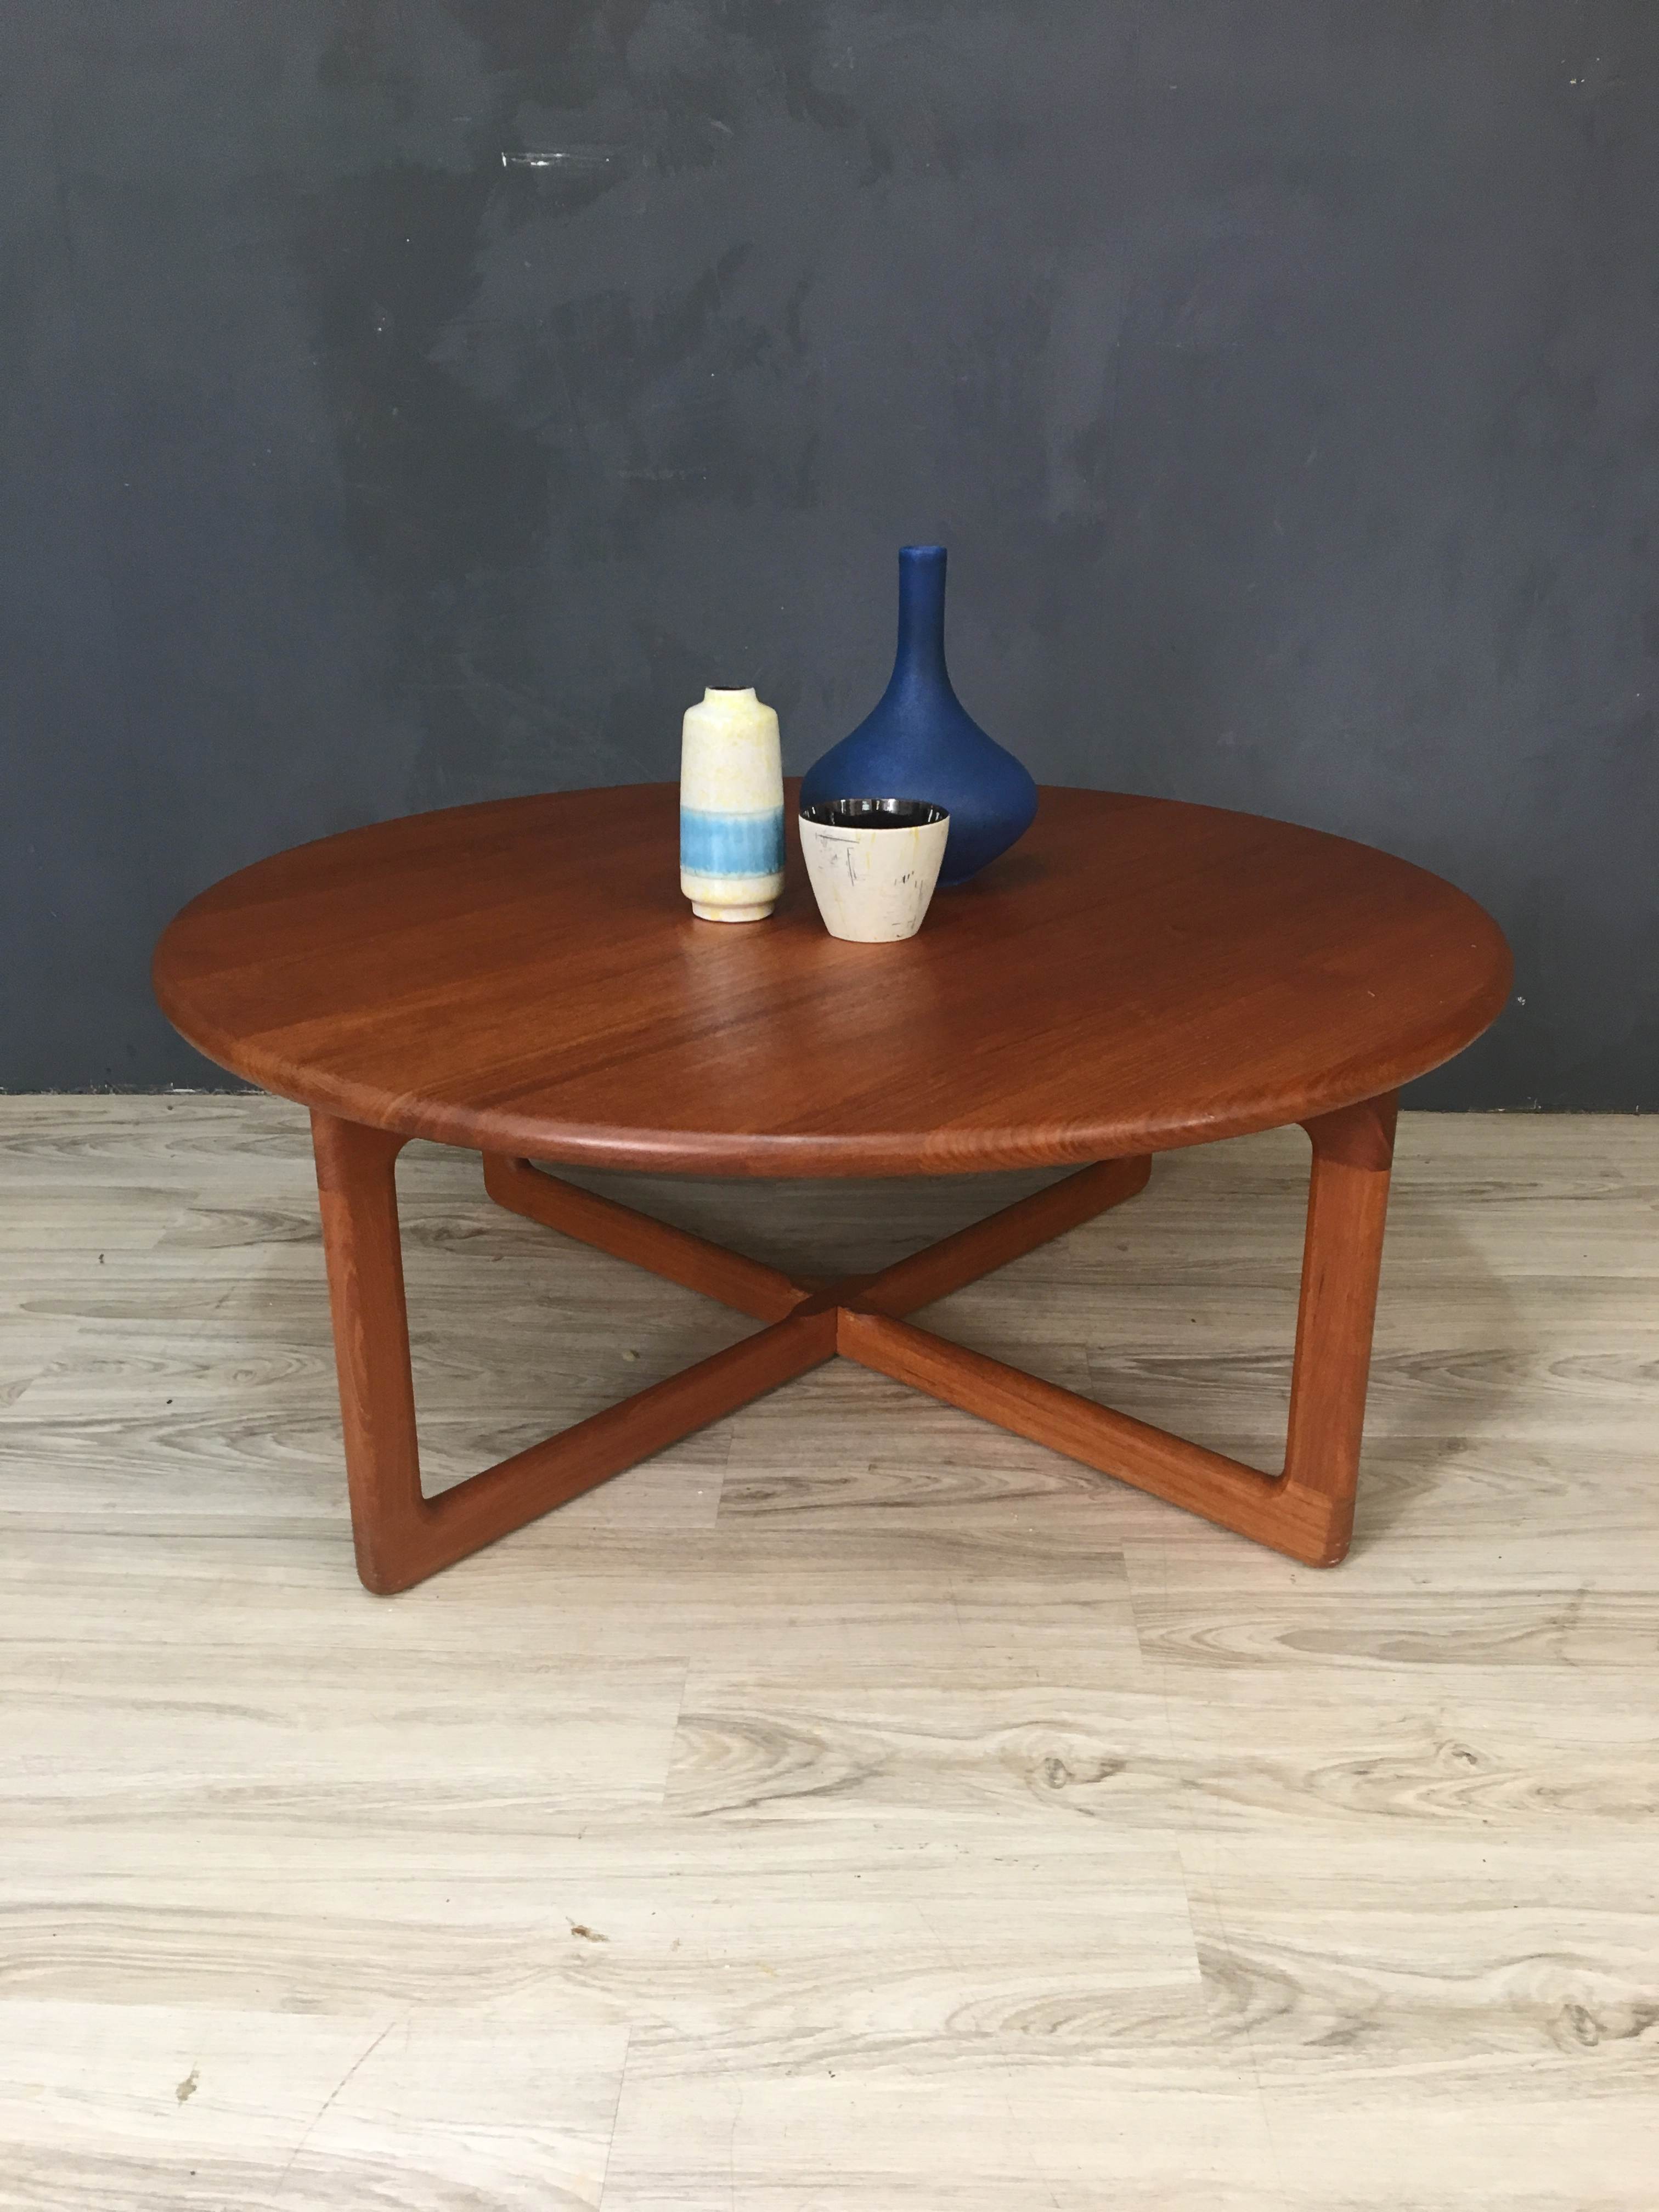 danishmodern round teak coffee table retrocraft design accent danish modern vanity unit with basin threshold wood and metal gold glass dale tiffany desk lamp meyda white